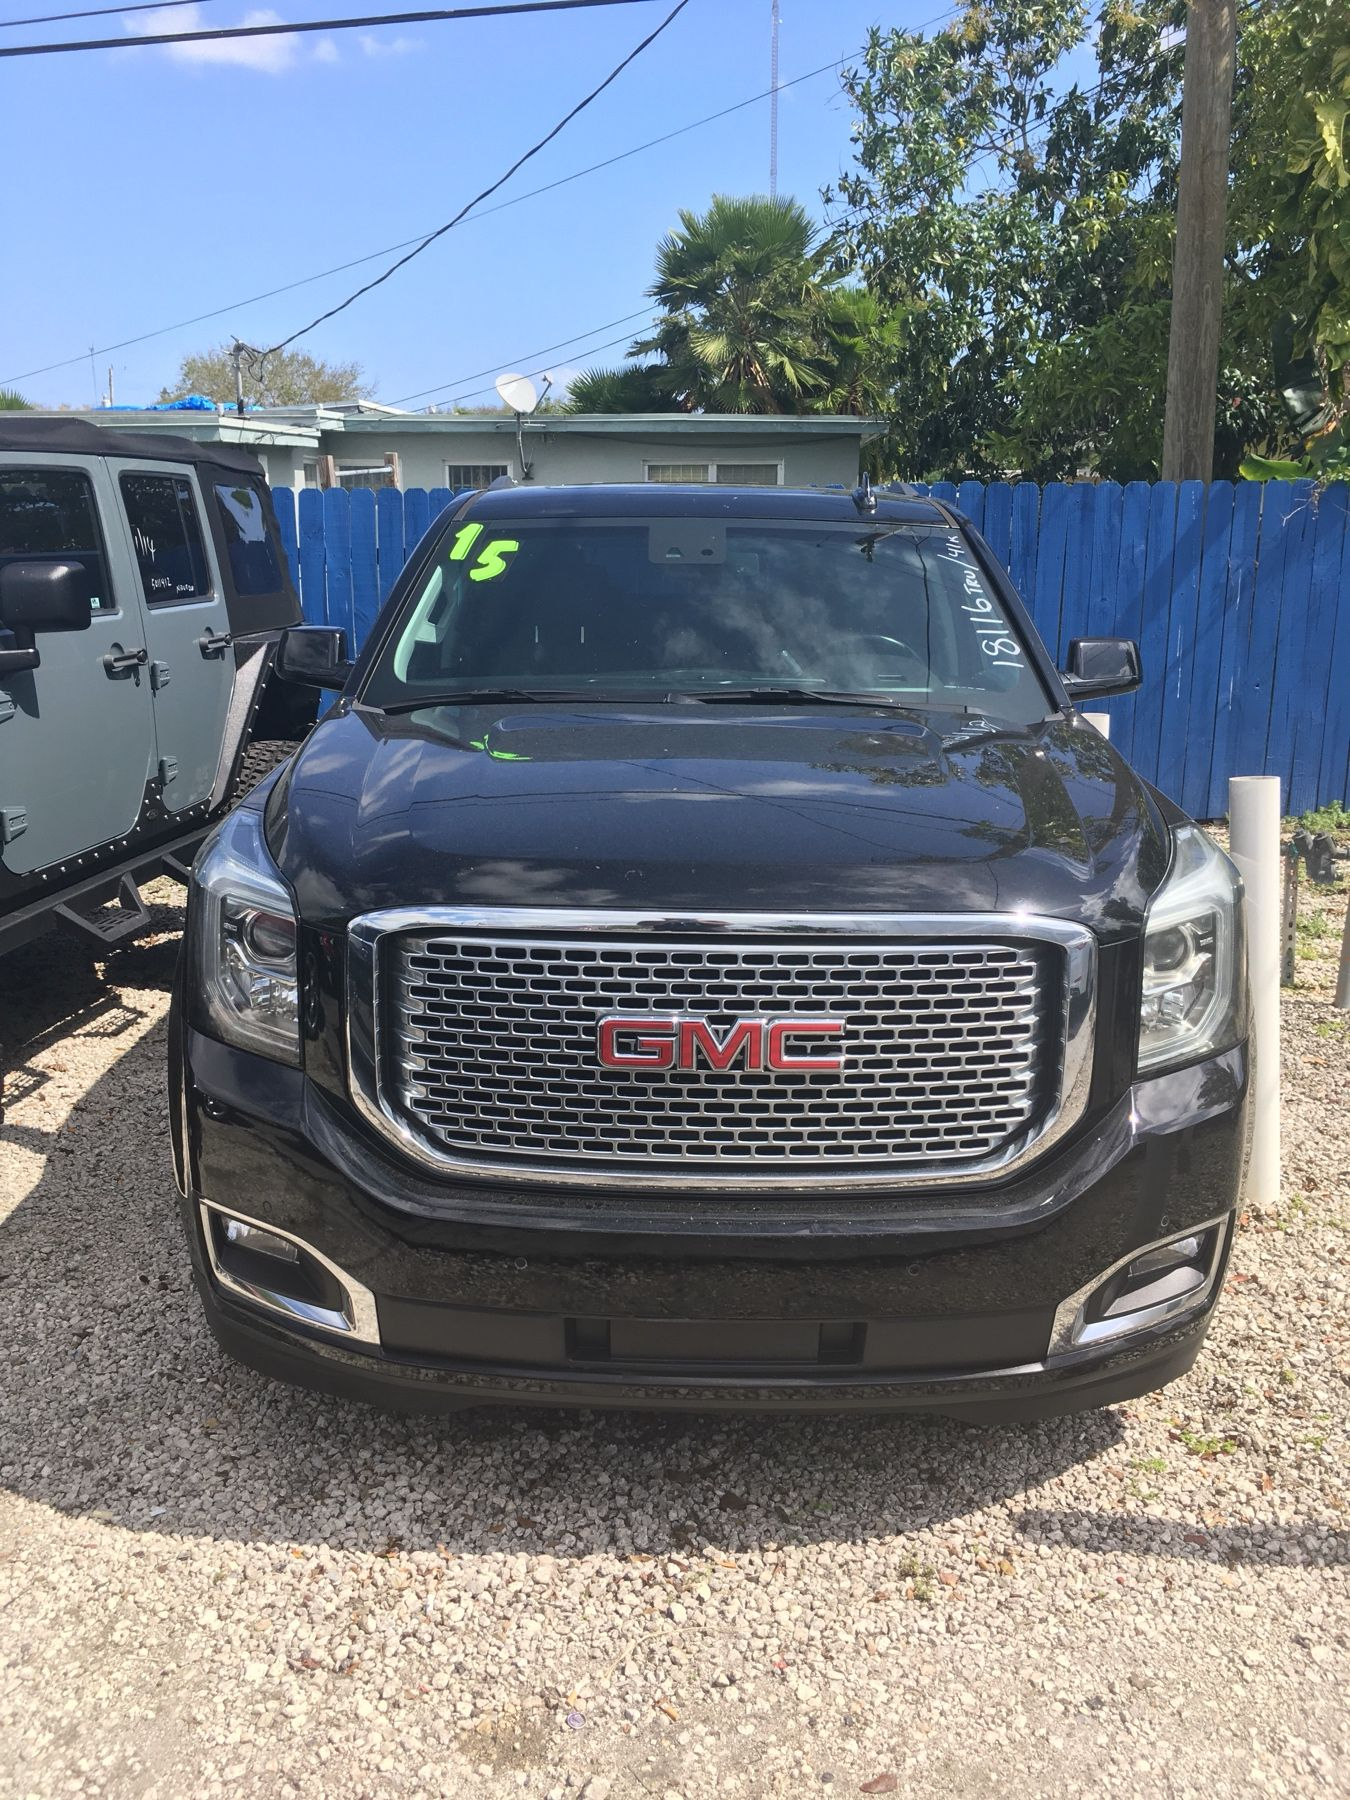 2015 Gmc Yukon Xl Denali Available Now Newarrivals Newinventory